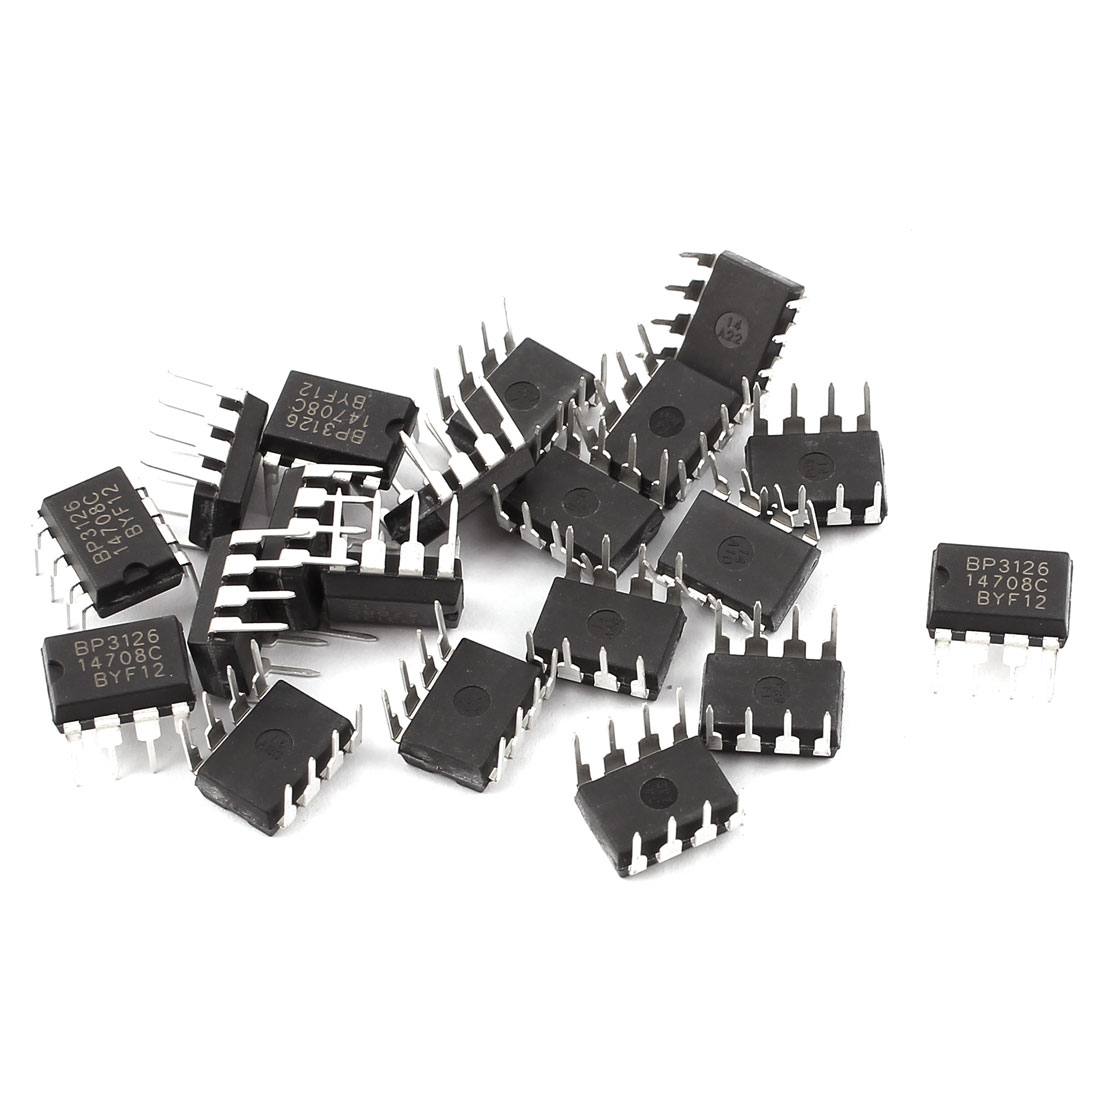 20Pcs BP3126 Replacement DIP-8 Package Type SMT LED Driver IC